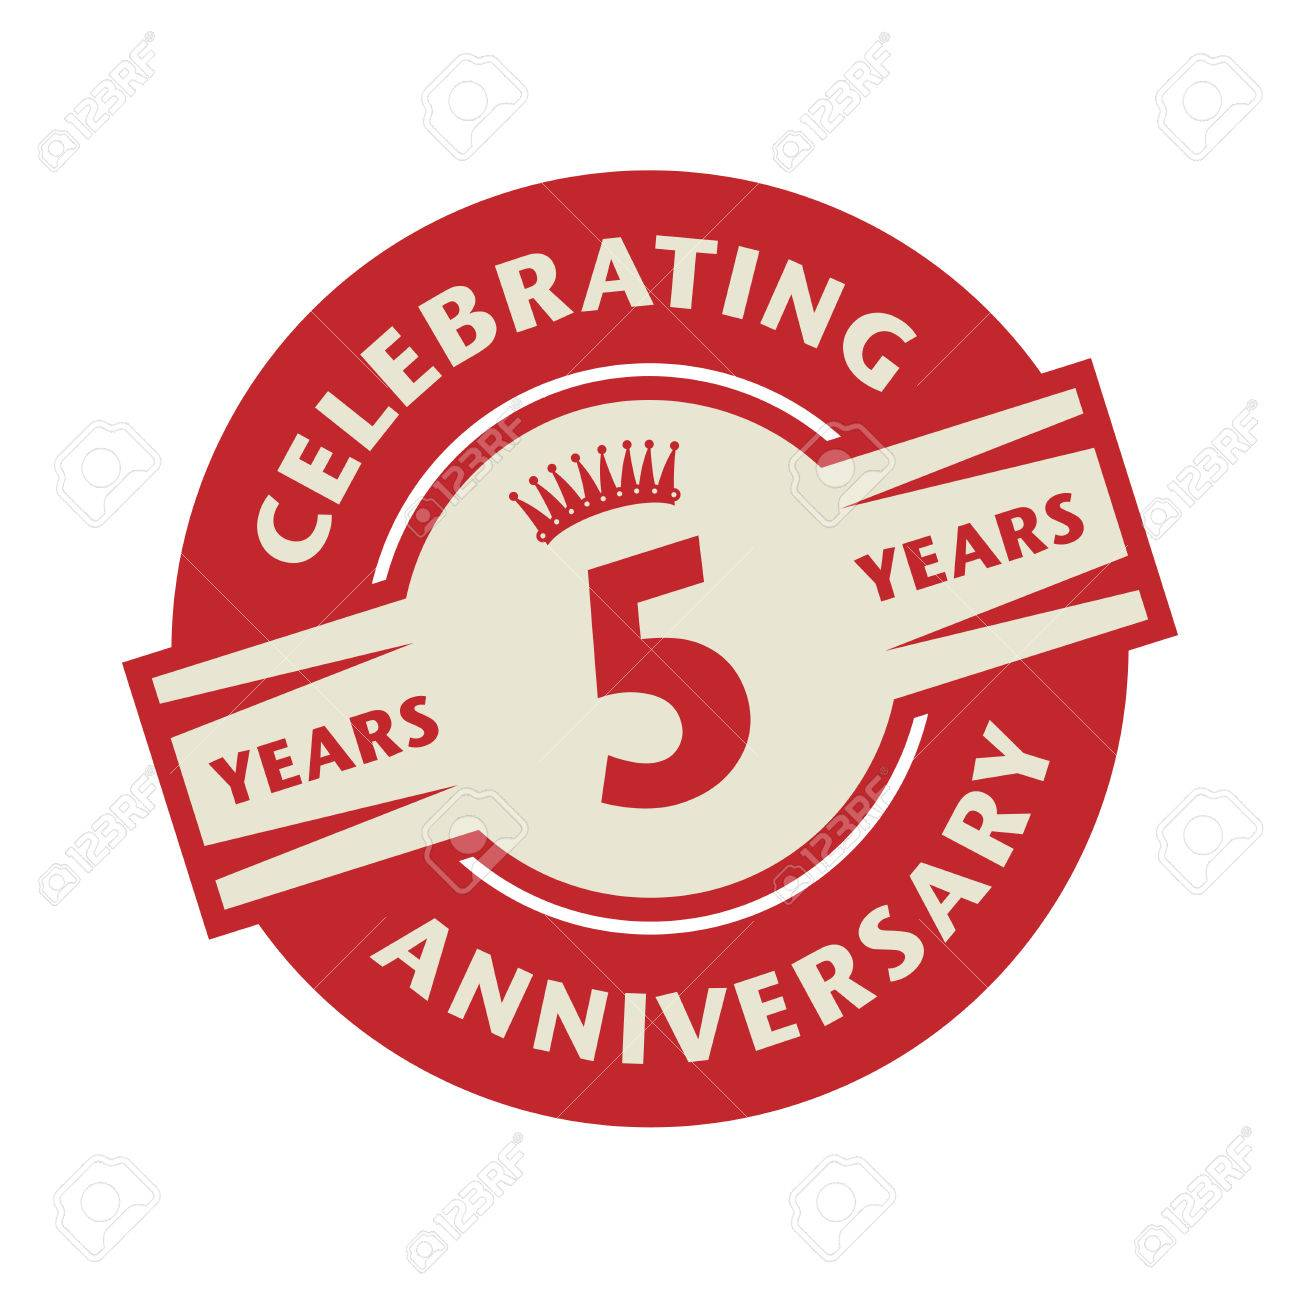 Stamp or label with the text celebrating 5 years anniversary stamp or label with the text celebrating 5 years anniversary vector illustration stock vector biocorpaavc Gallery